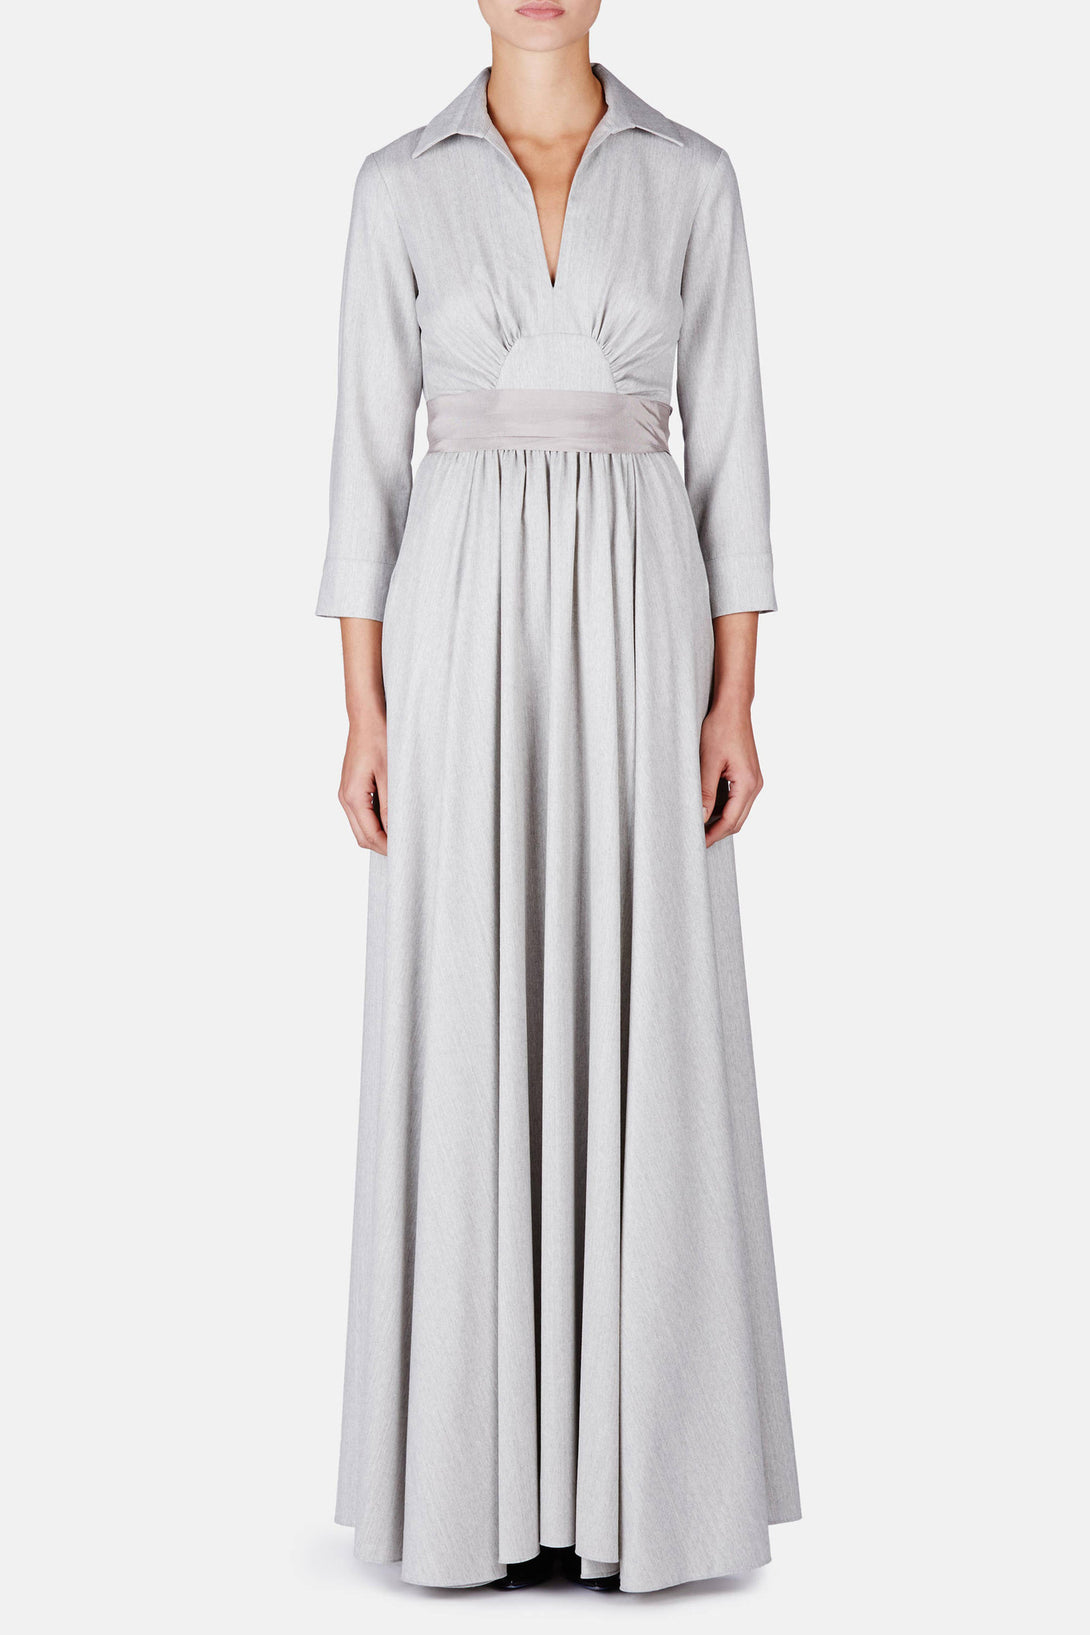 Cotton 3/4 Sleeve Tie Gown - Heather Grey